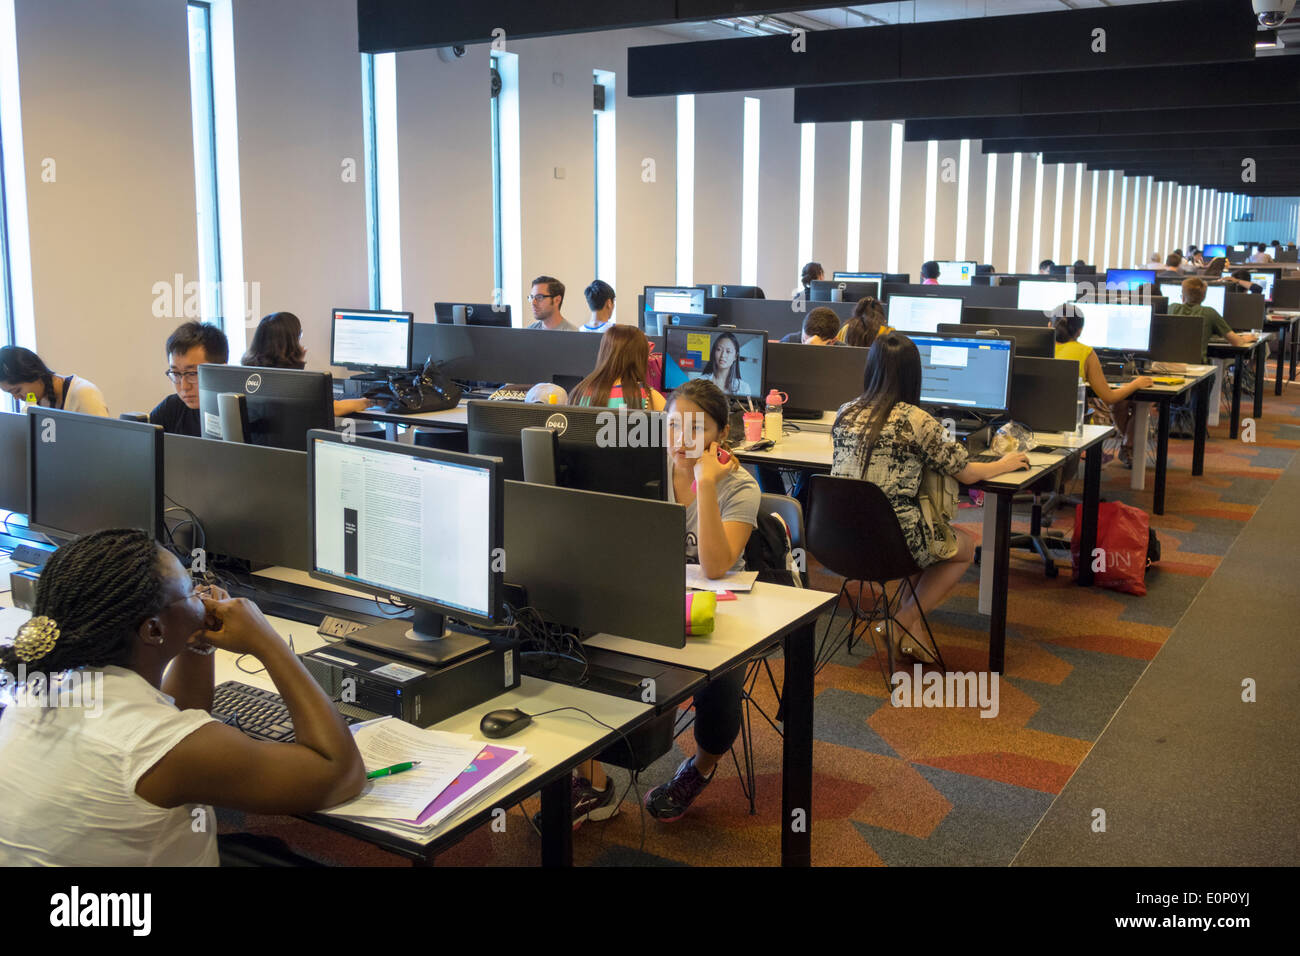 Sydney Australia NSW New South Wales University of Sydney education campus student Fisher Library Black girl woman teen Asian computer stations screen - Stock Image